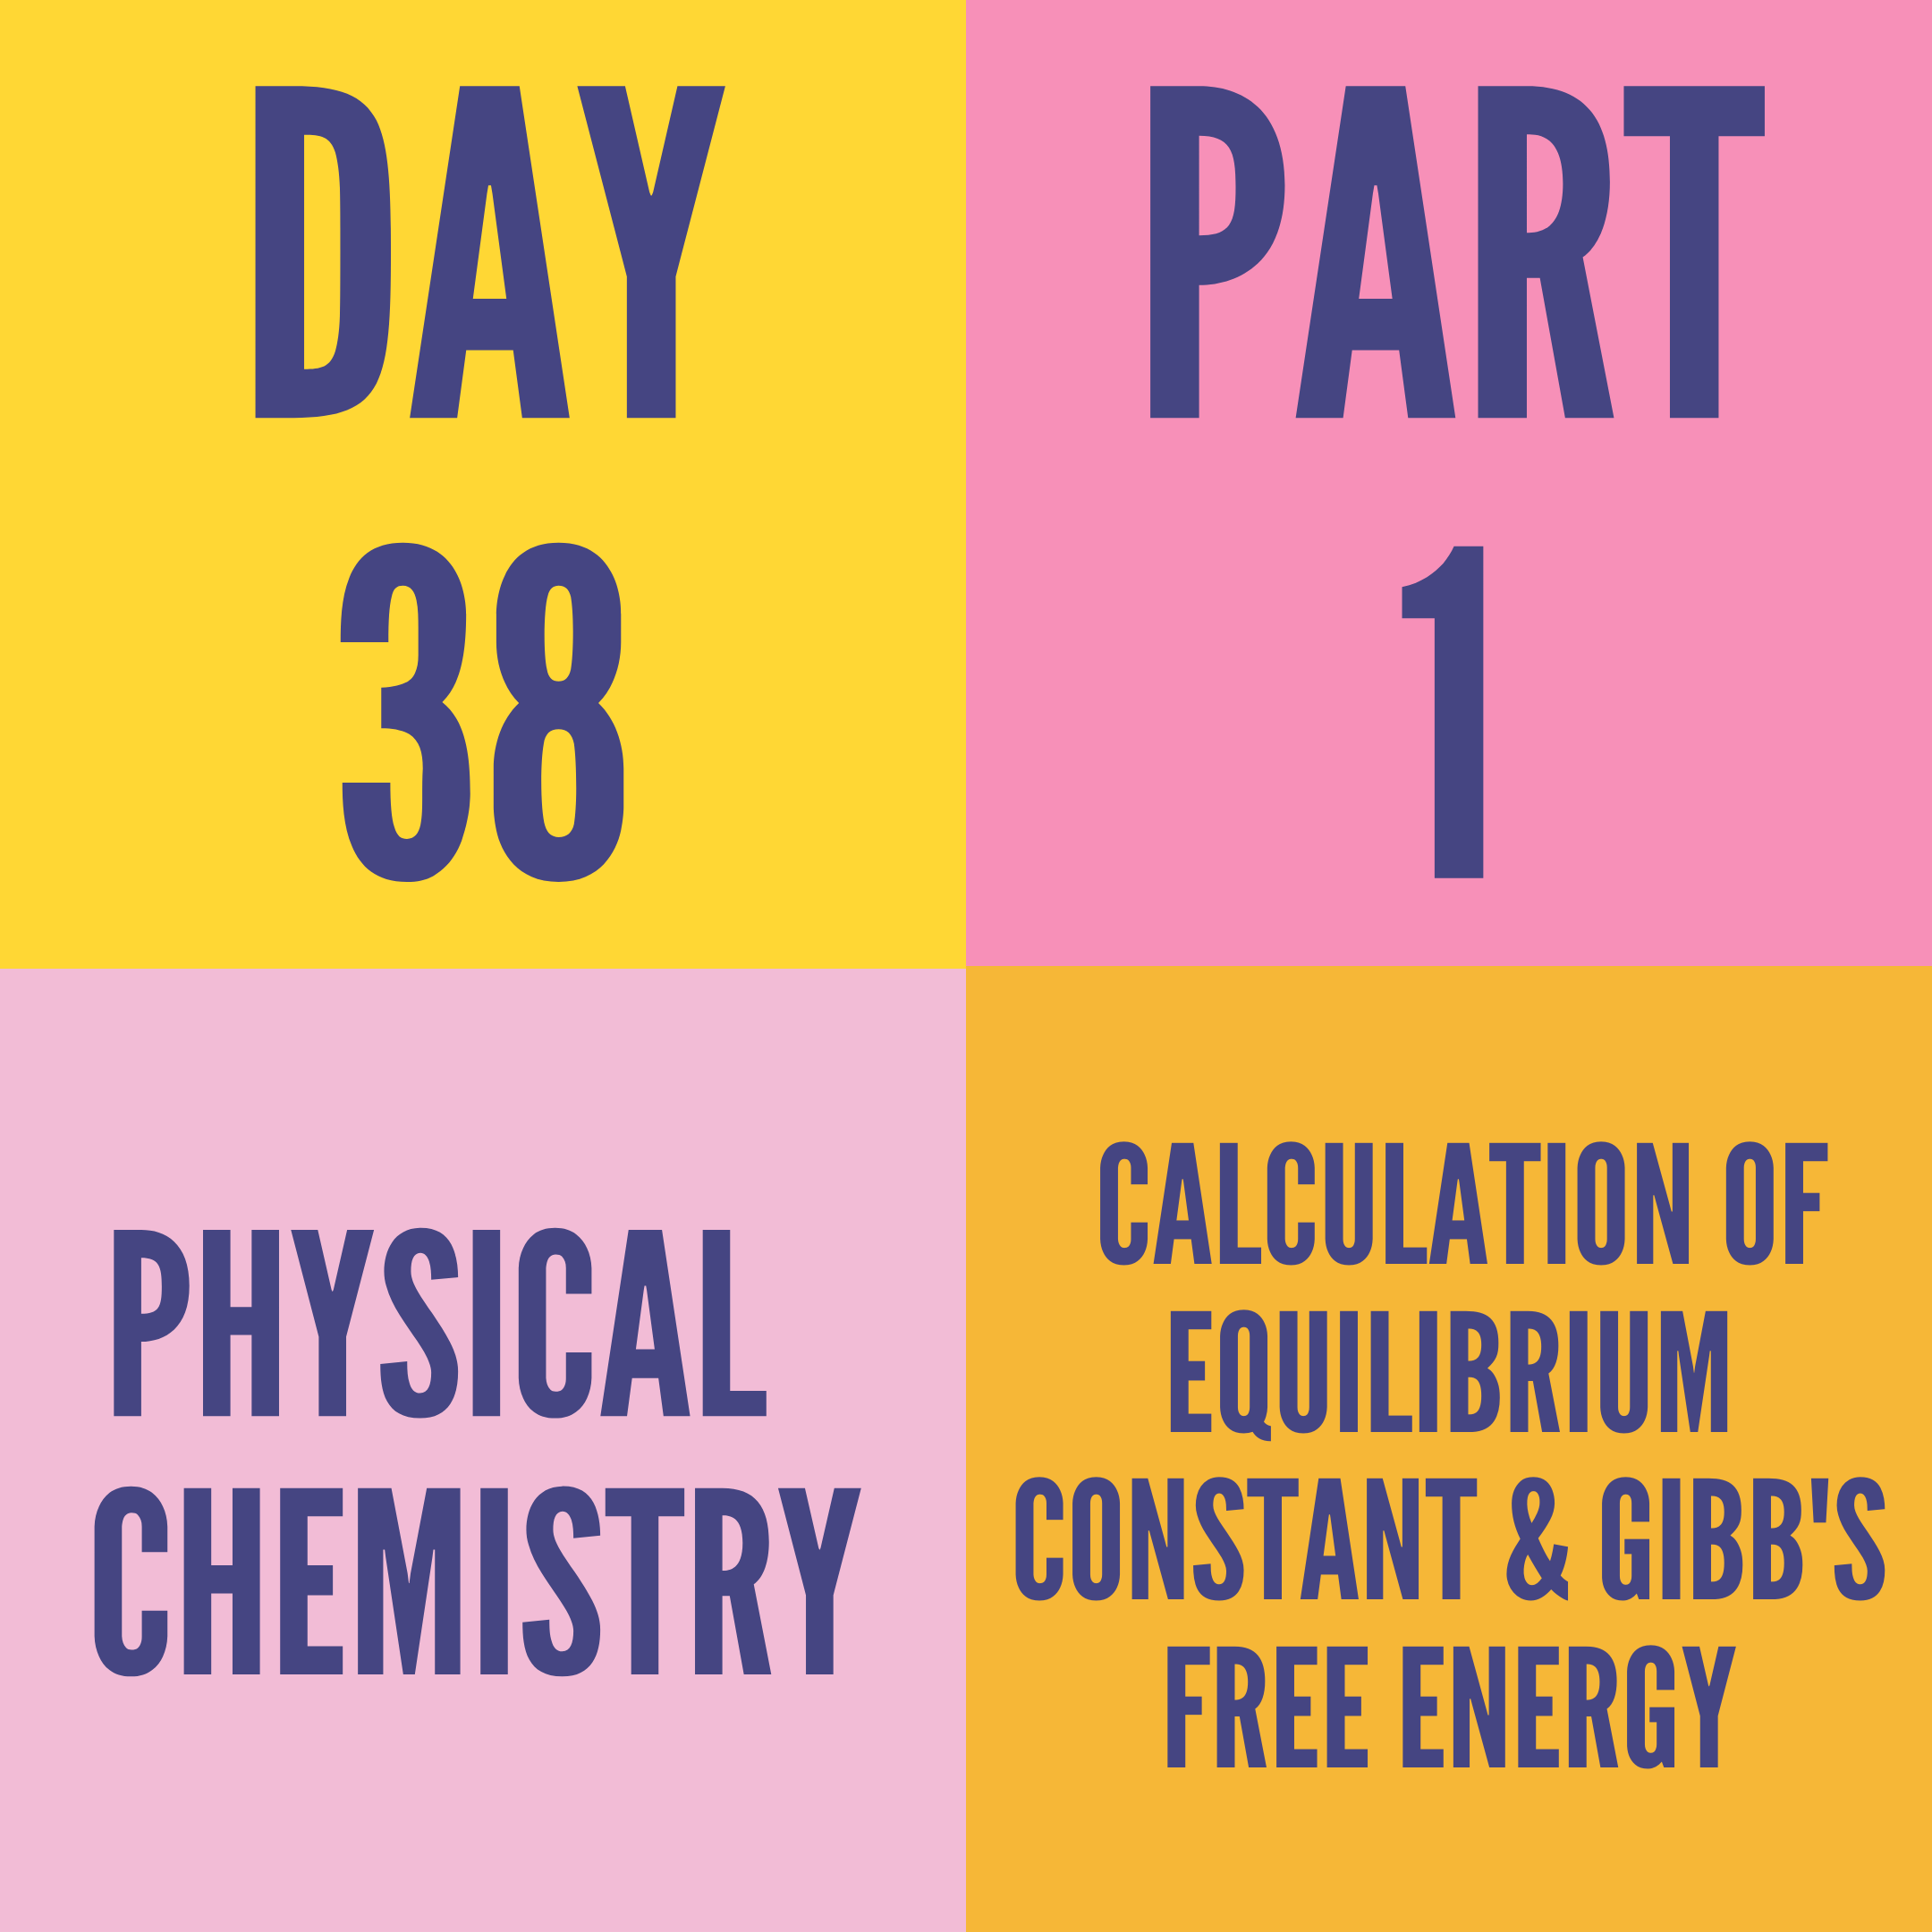 DAY-38 PART-1 CALCULATION OF EQUILIBRIUM CONSTANT & GIBB'S FREE ENERGY